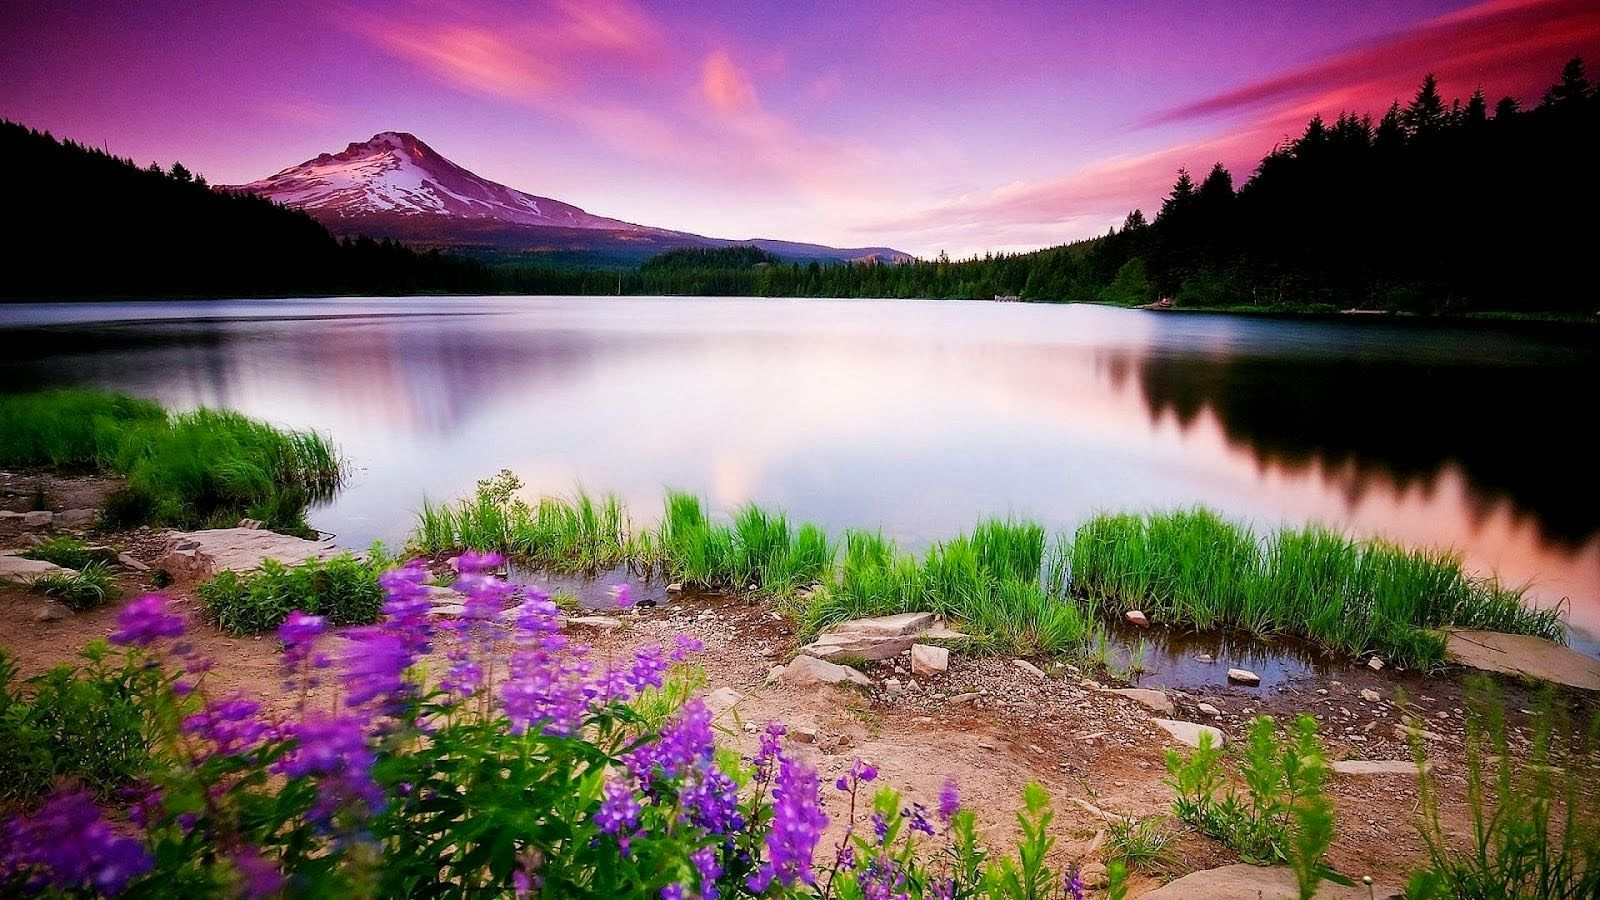 Colorful Lake Mountains Full Hd Nature Wallpapers Free Downloads For Laptop Pc Des Beautiful Landscape Wallpaper Beautiful Nature Wallpaper Landscape Wallpaper